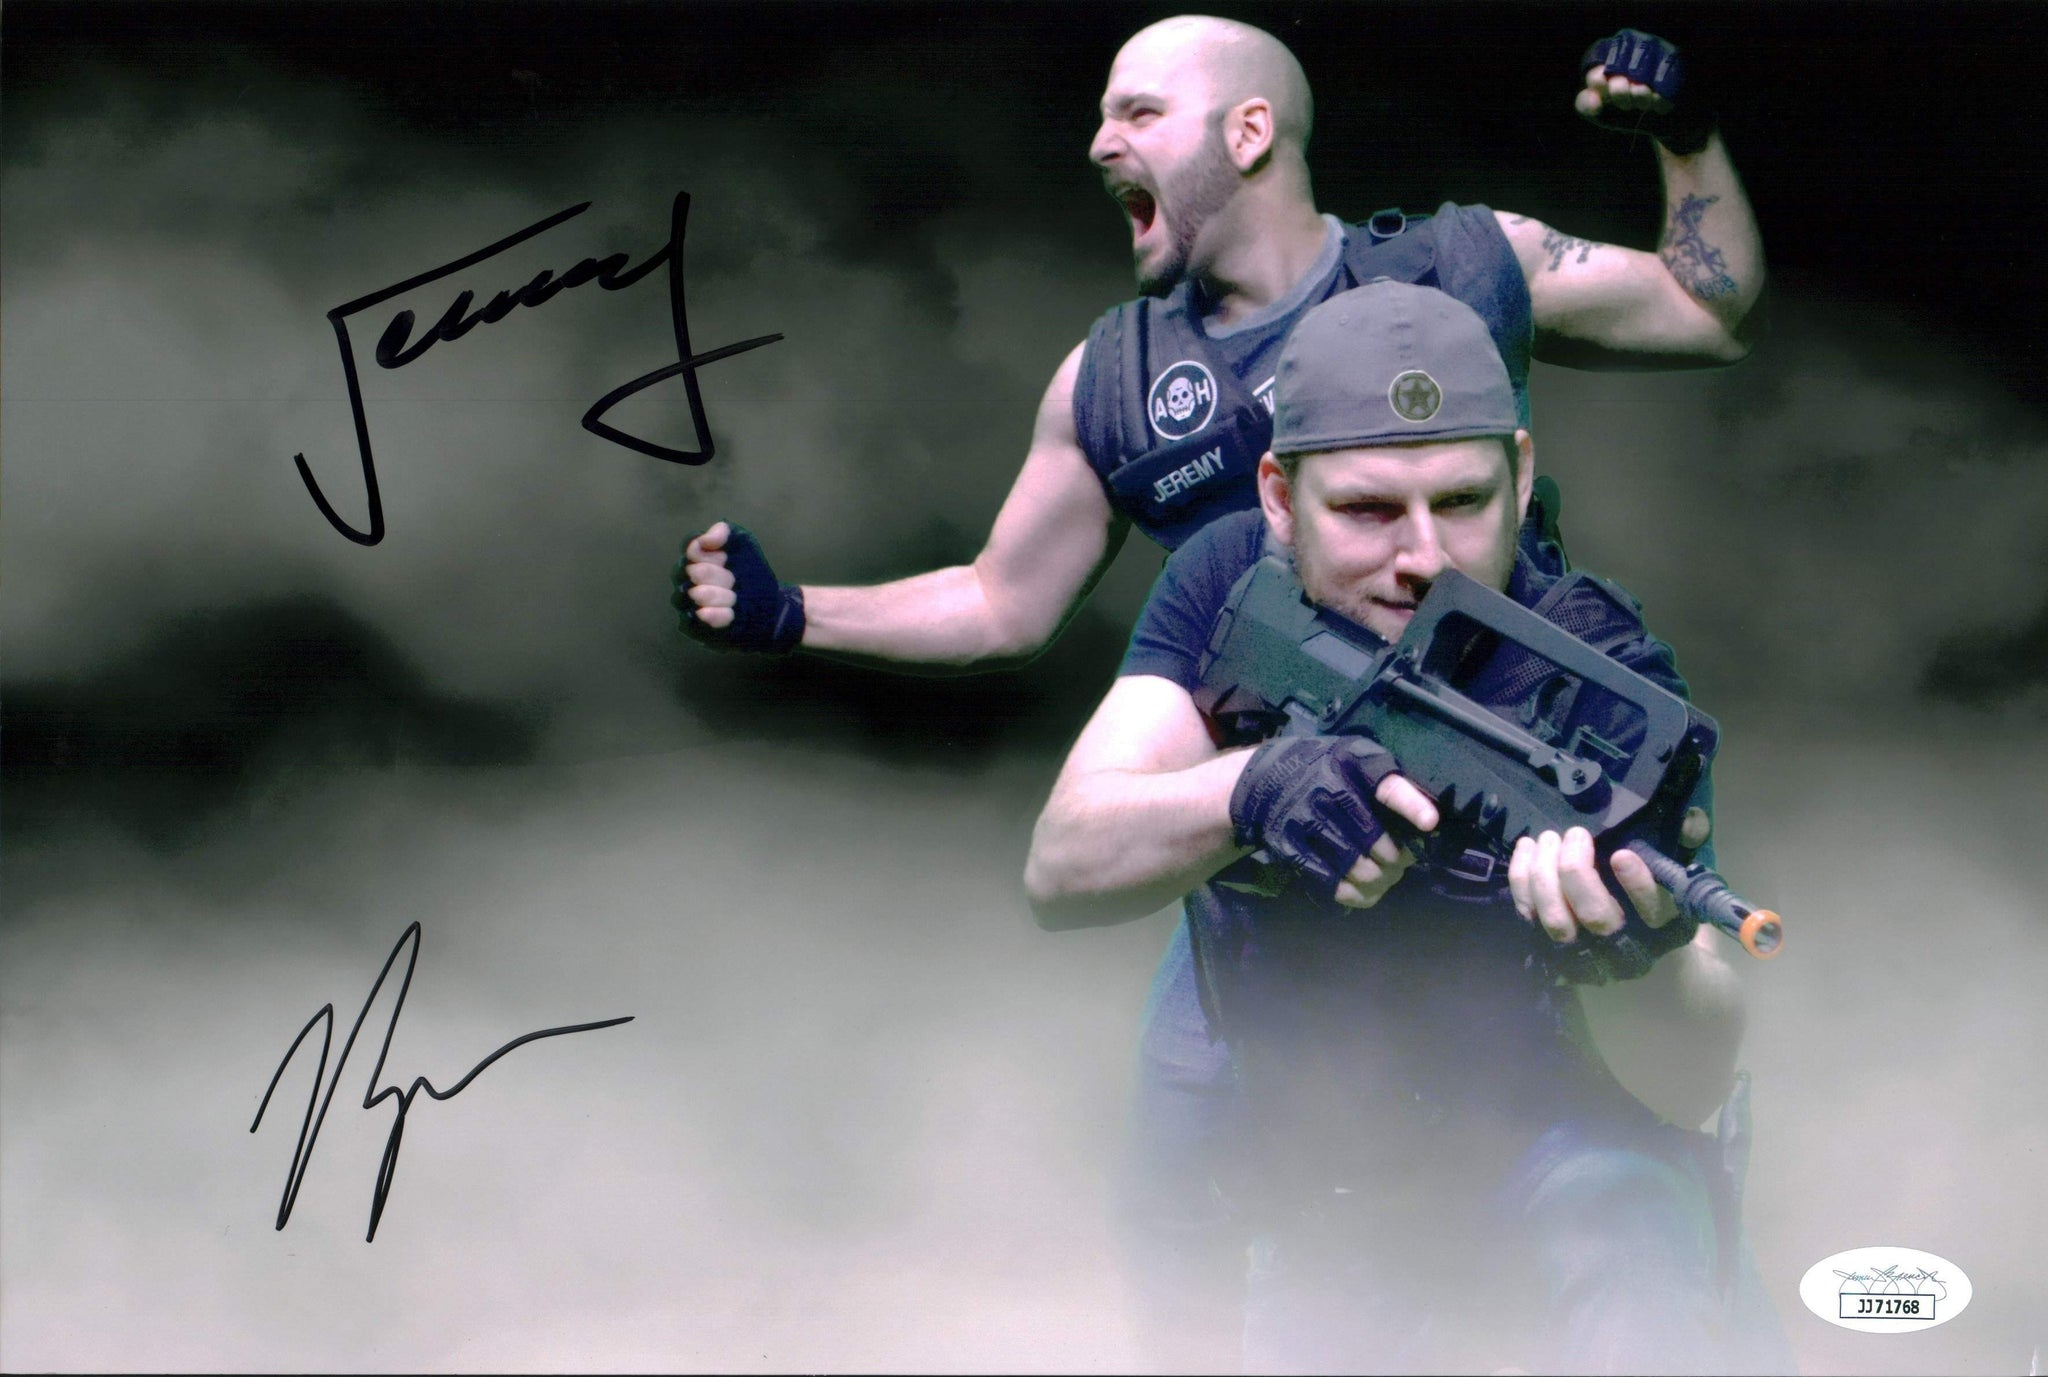 Achievement Hunter 8x12 Photo Signed Autograph Dooley Haywood JSA Certified COA GalaxyCon